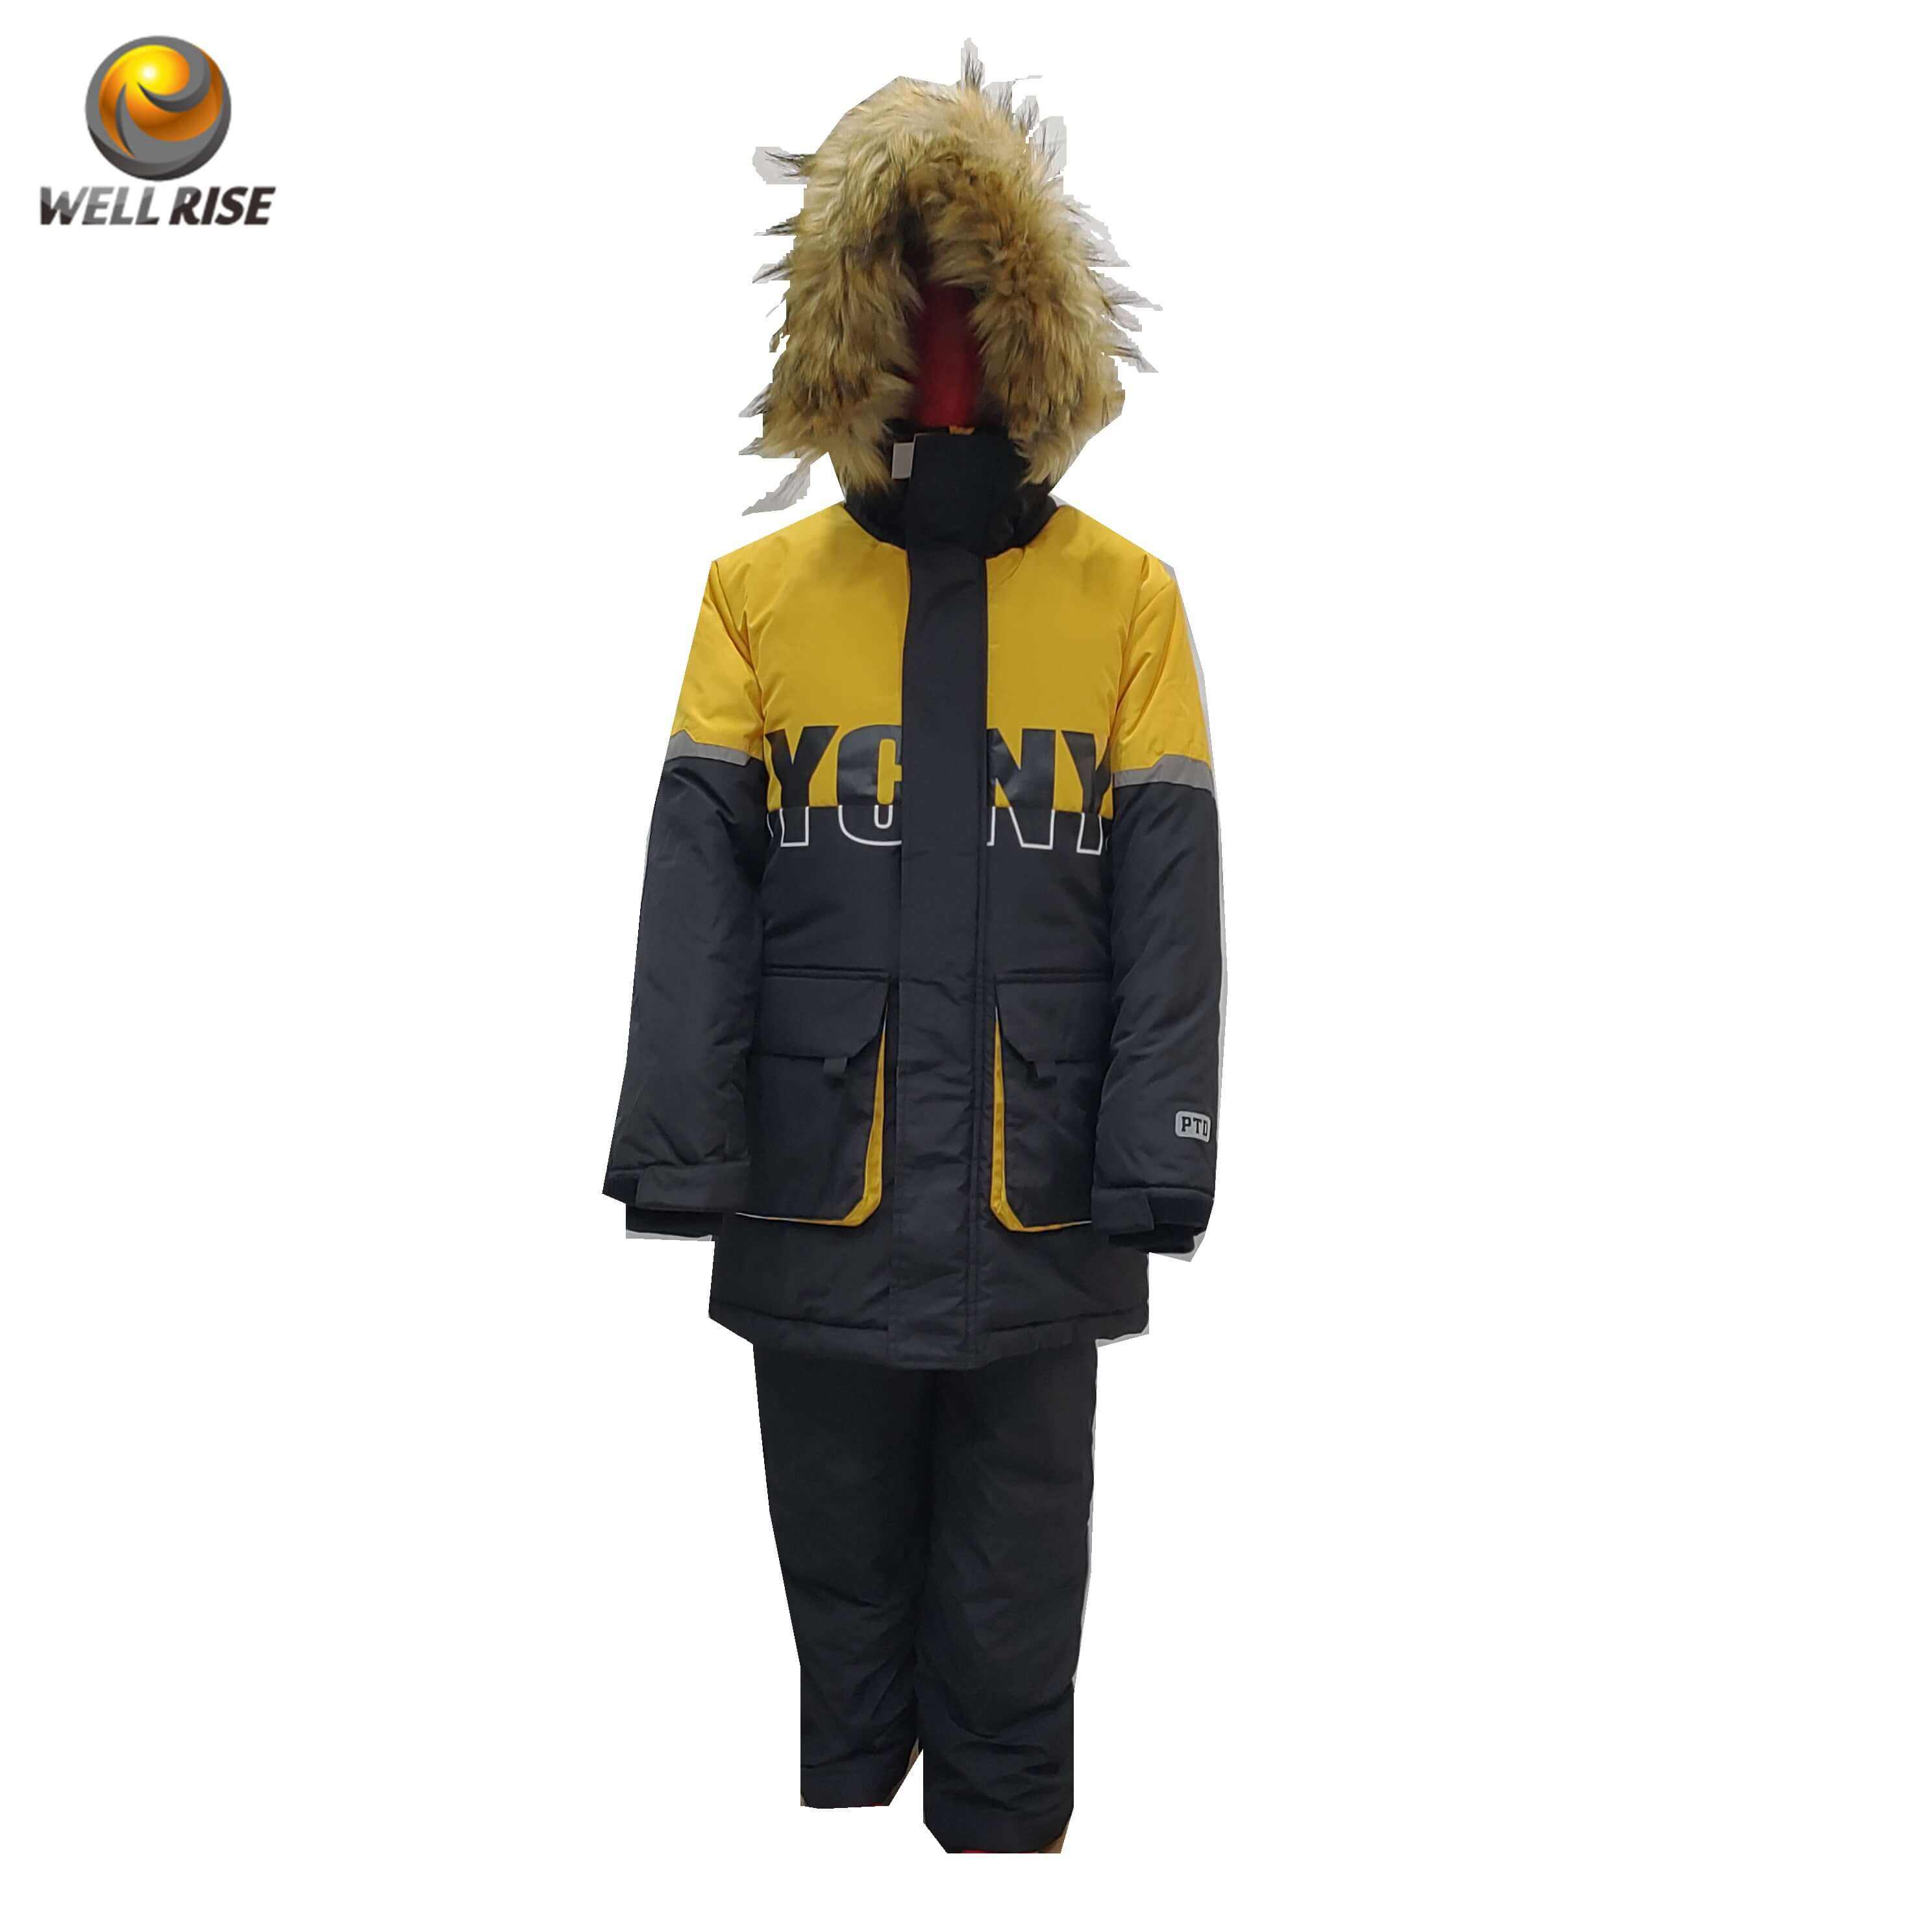 Well Rise boy ski one piece suit waterproof windproof high quality ski suit jacket and pant